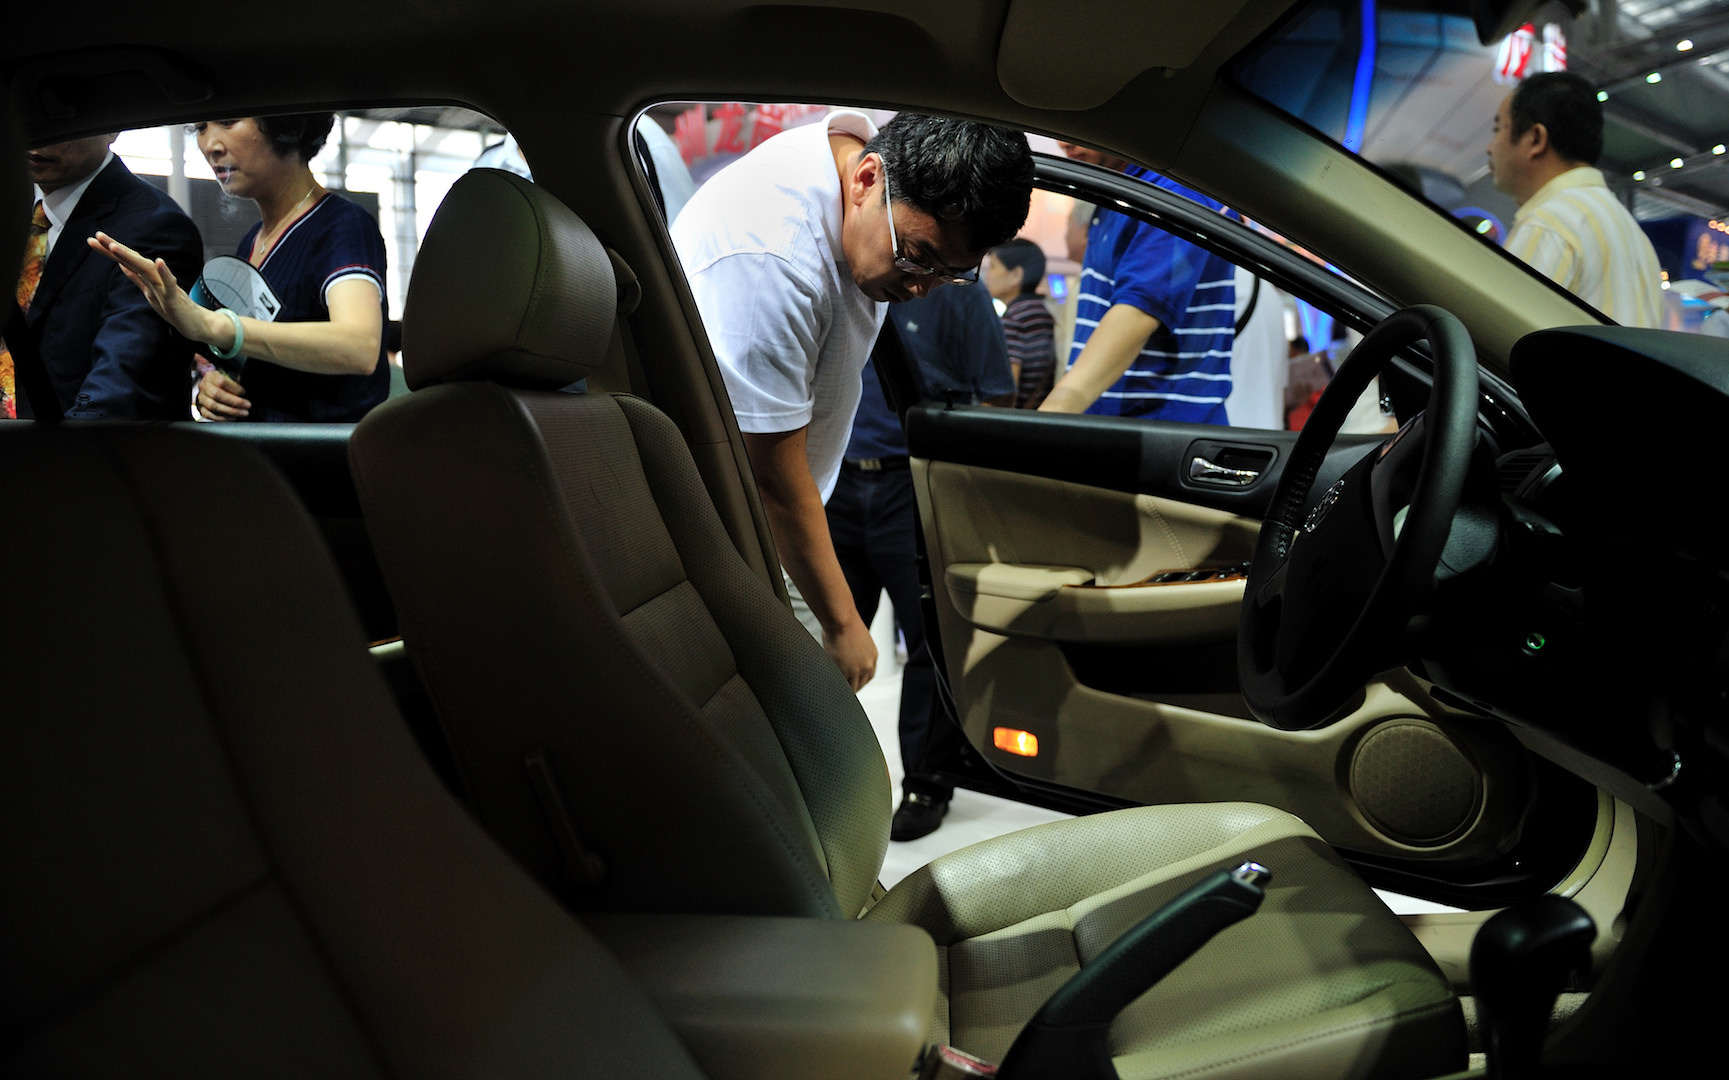 Chinese Electric Vehicle Manufacturer BYD's Image Hurt by Scandal